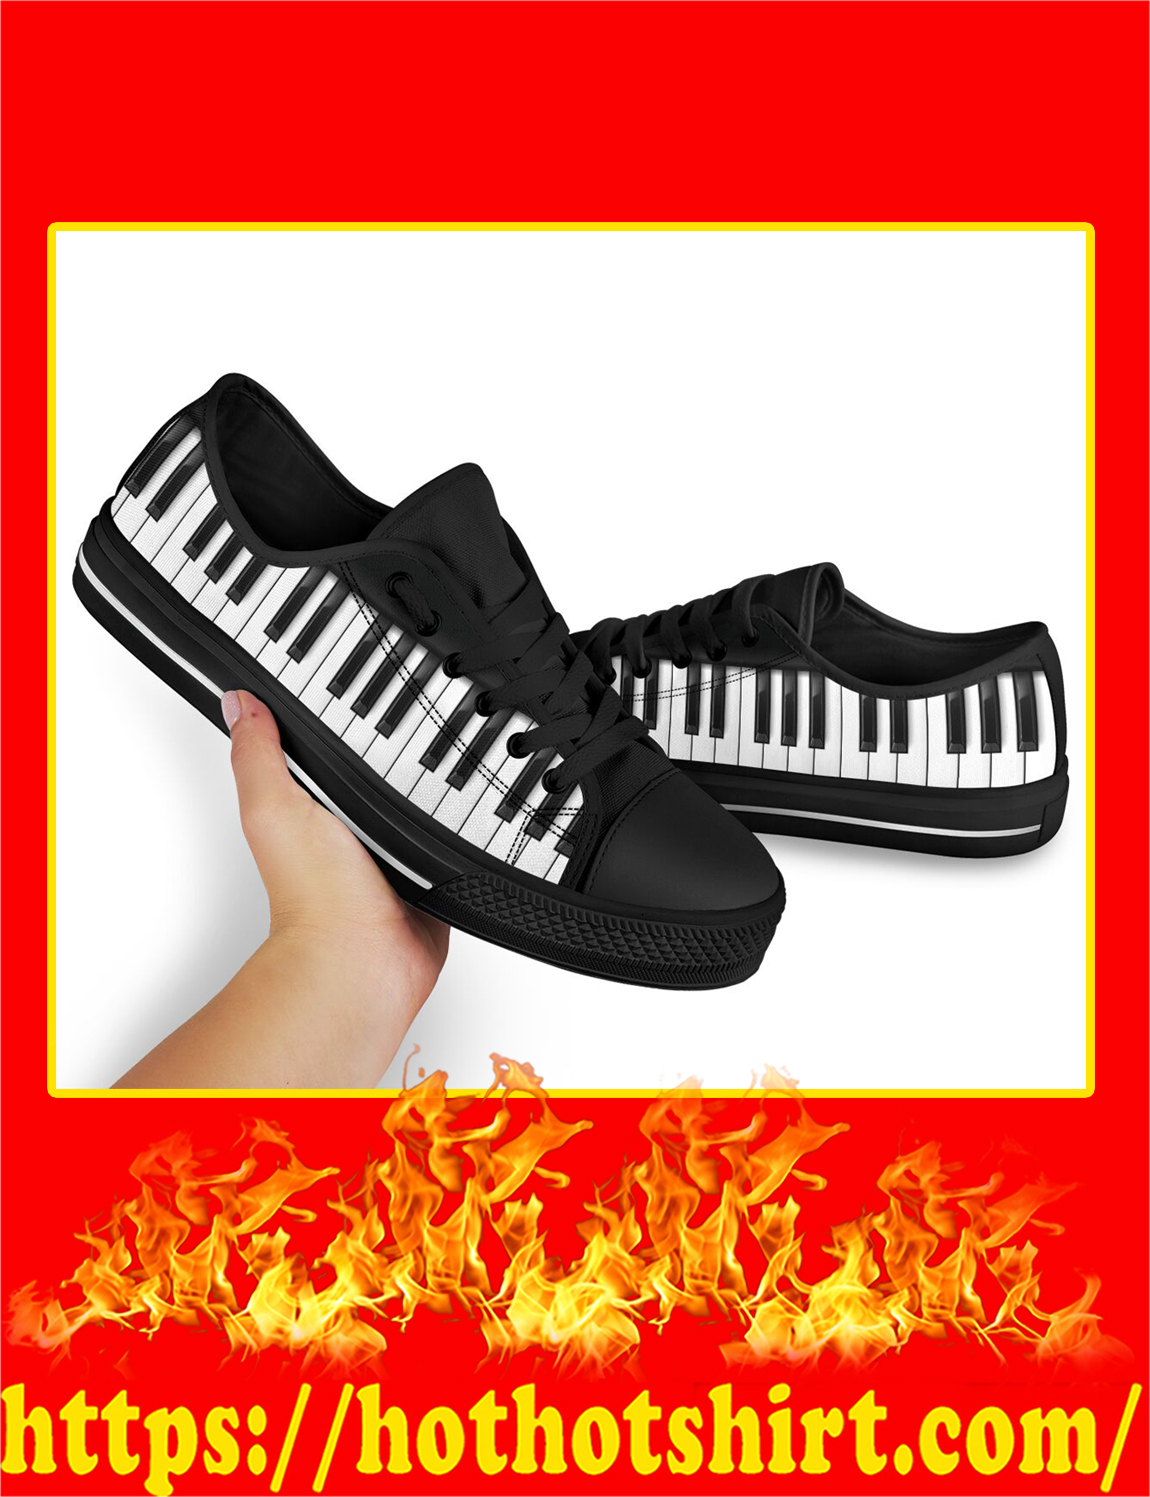 Piano Keyboard Shortcut Low Top Shoes- pic 2